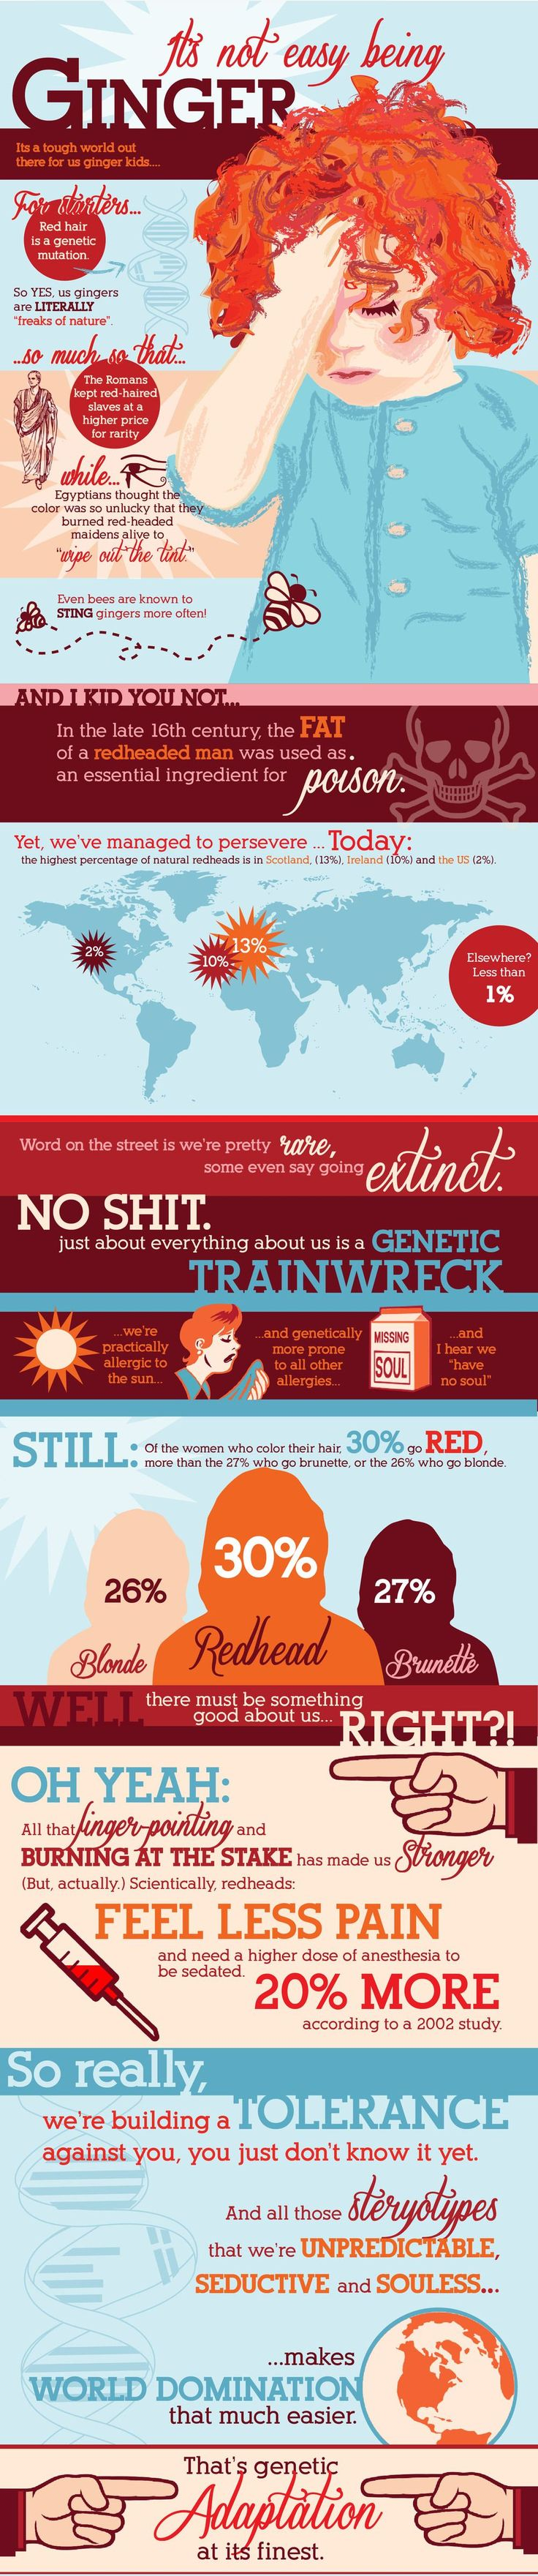 Infographic Facts About Gingers - Humors Chart All About Red Heads #RedHeads